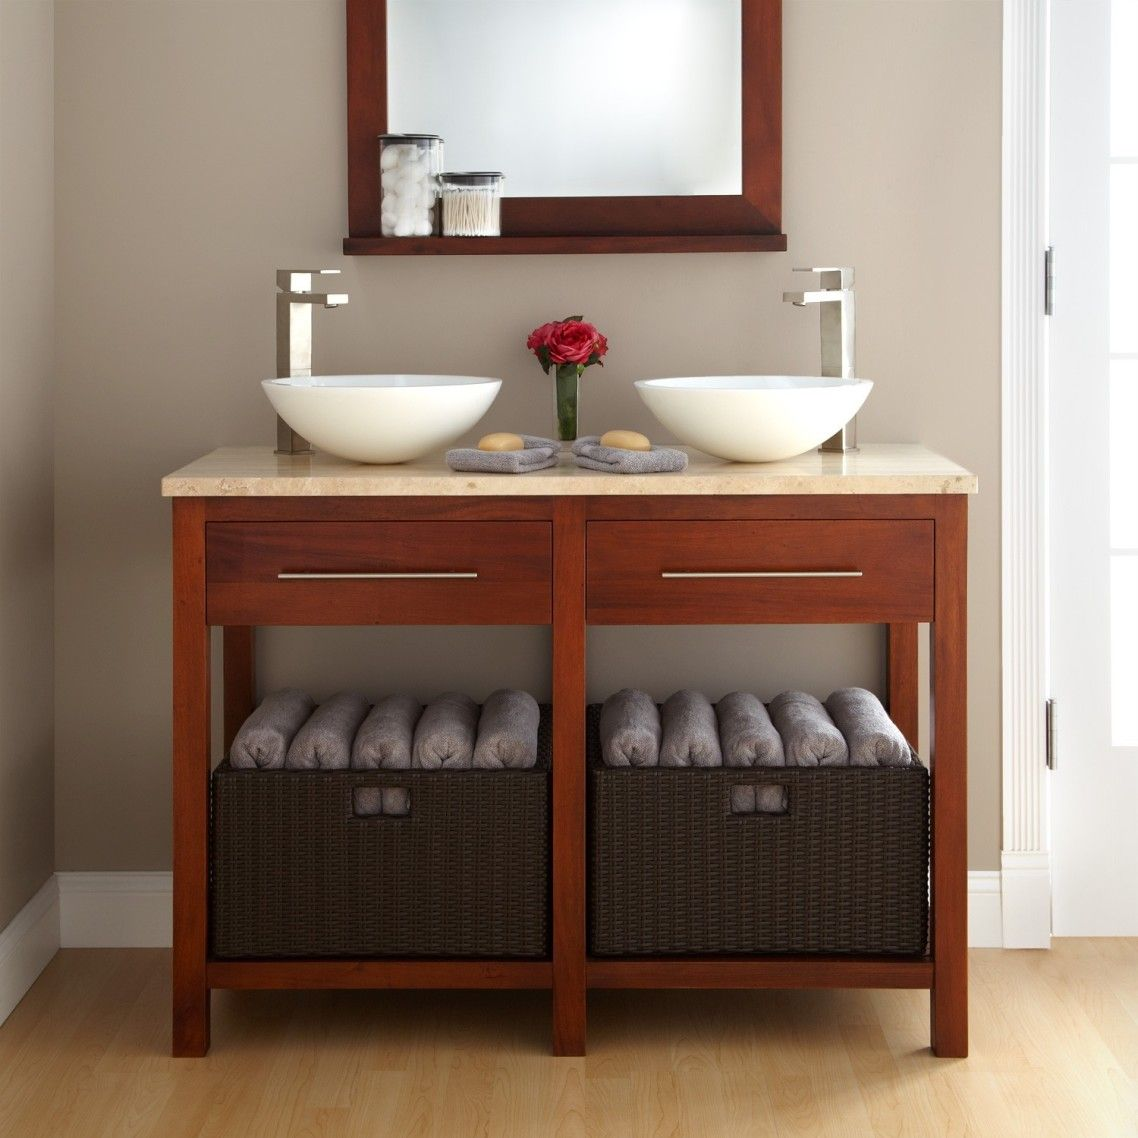 Awesome Brown Lacquered Oak Wood Open Shelves Vanity With Drawers